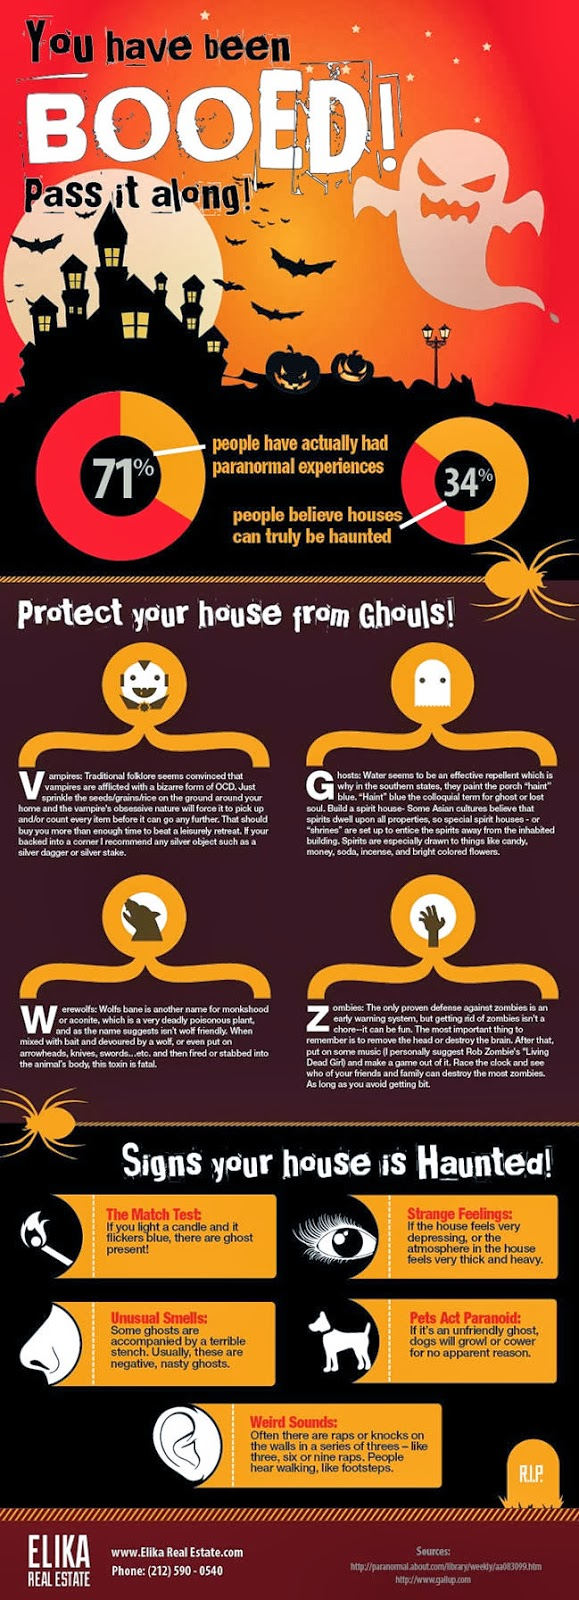 Signs Your House IS Haunted!